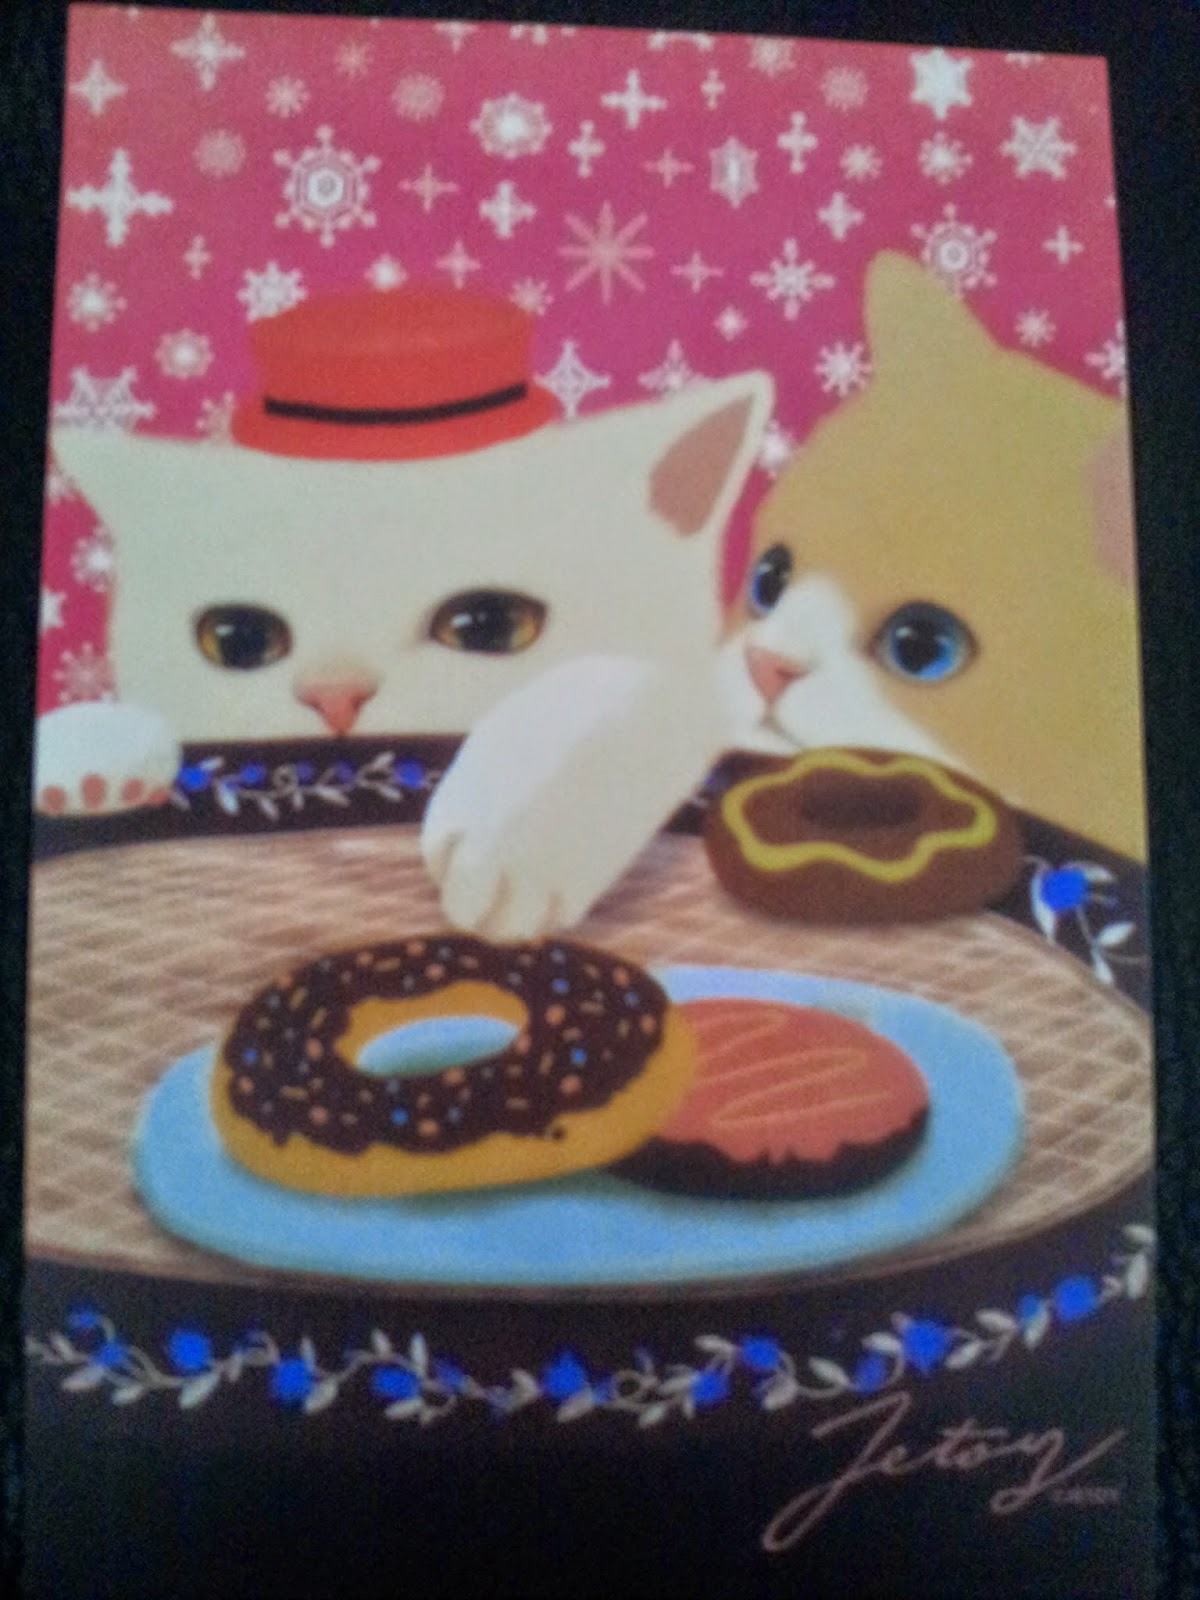 carte-postale-postcrossing-cartes-jetoy-chat